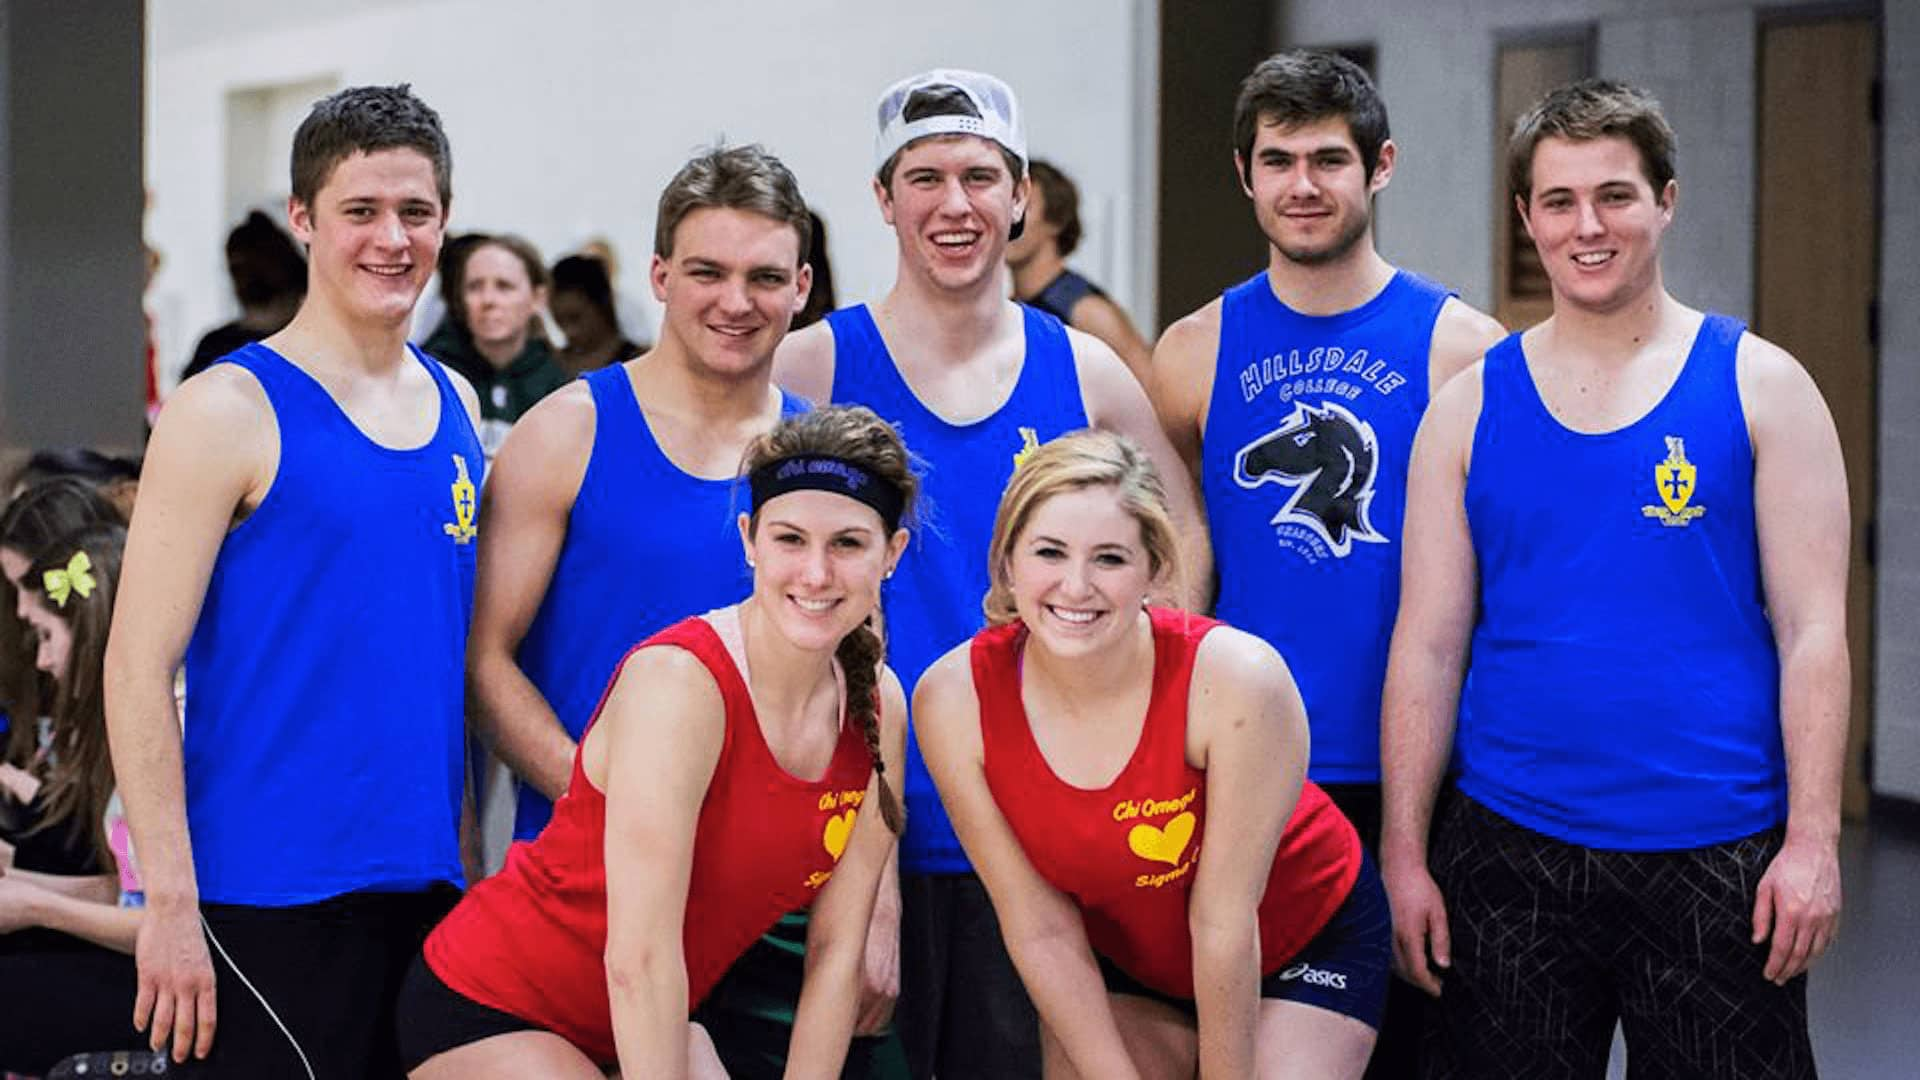 Chi Omega and Sigma Chi volleyball team group photo.